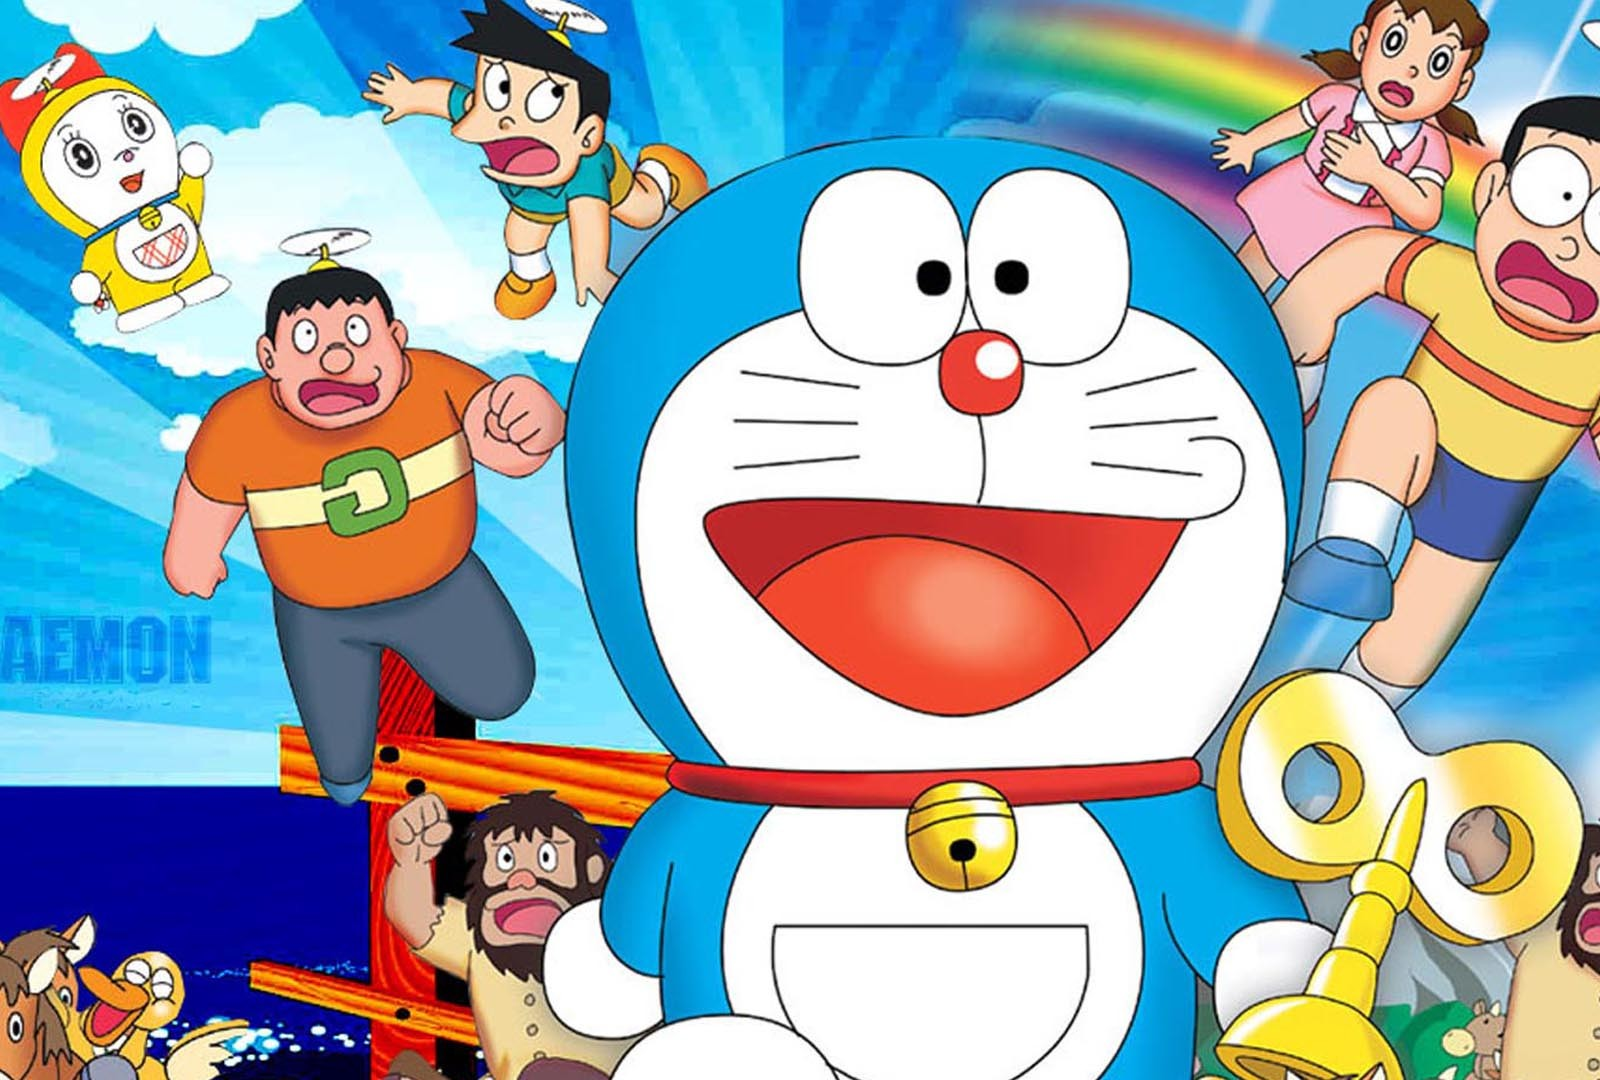 doraemon 3d cartoon hd for android wallpaper desktop hd